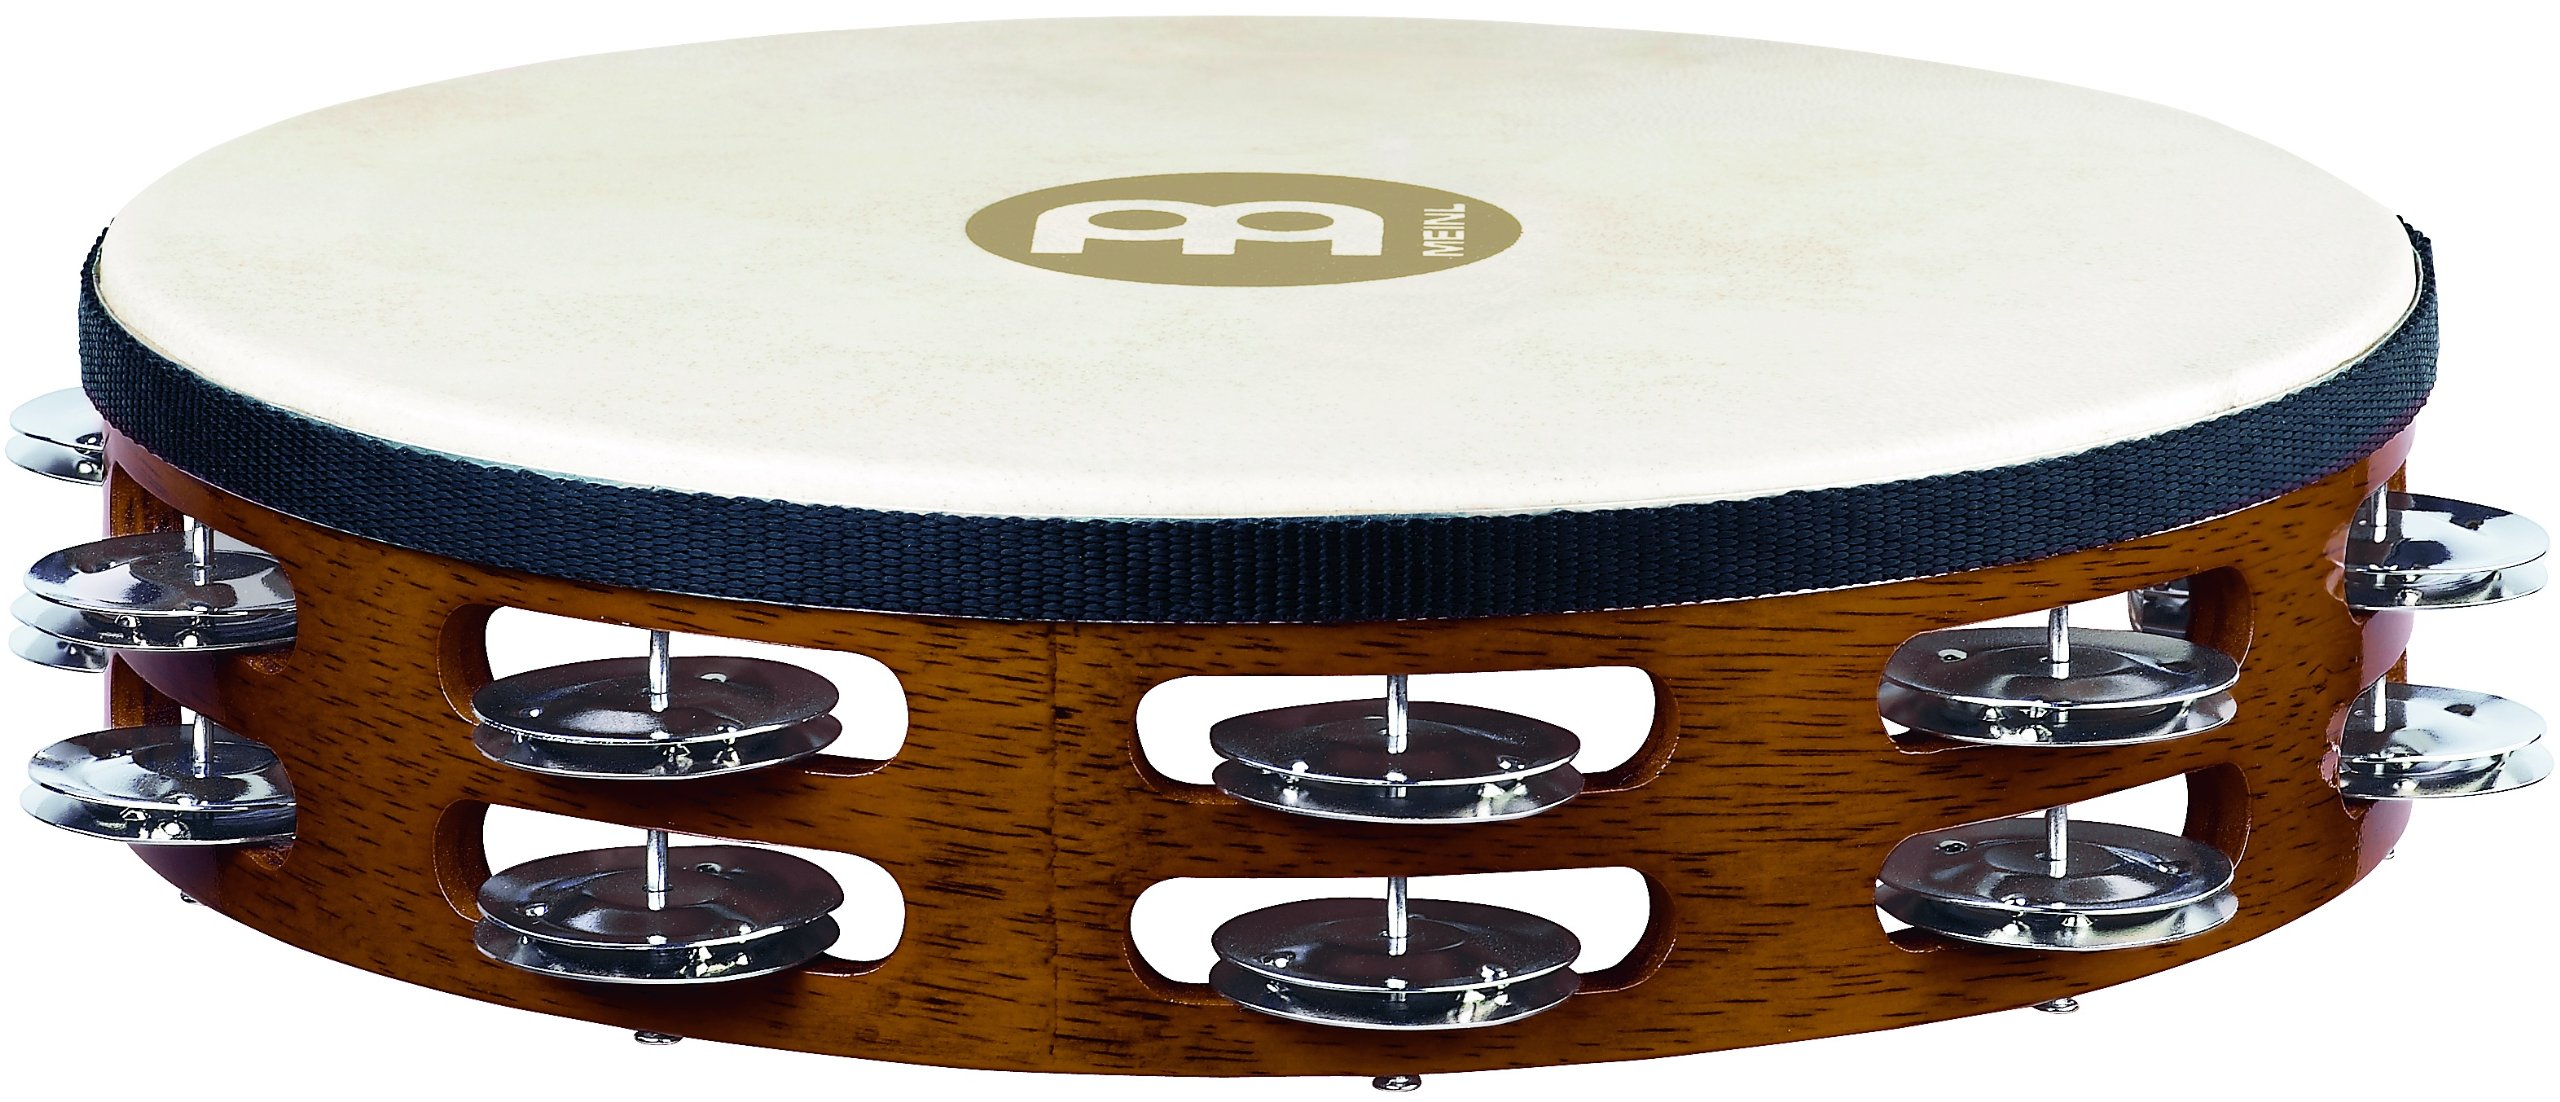 Meinl Percussion TAH2AB Traditional 10-Inch Wood Tambourine with Goat Skin Head and Steel Jingles, 2 Row